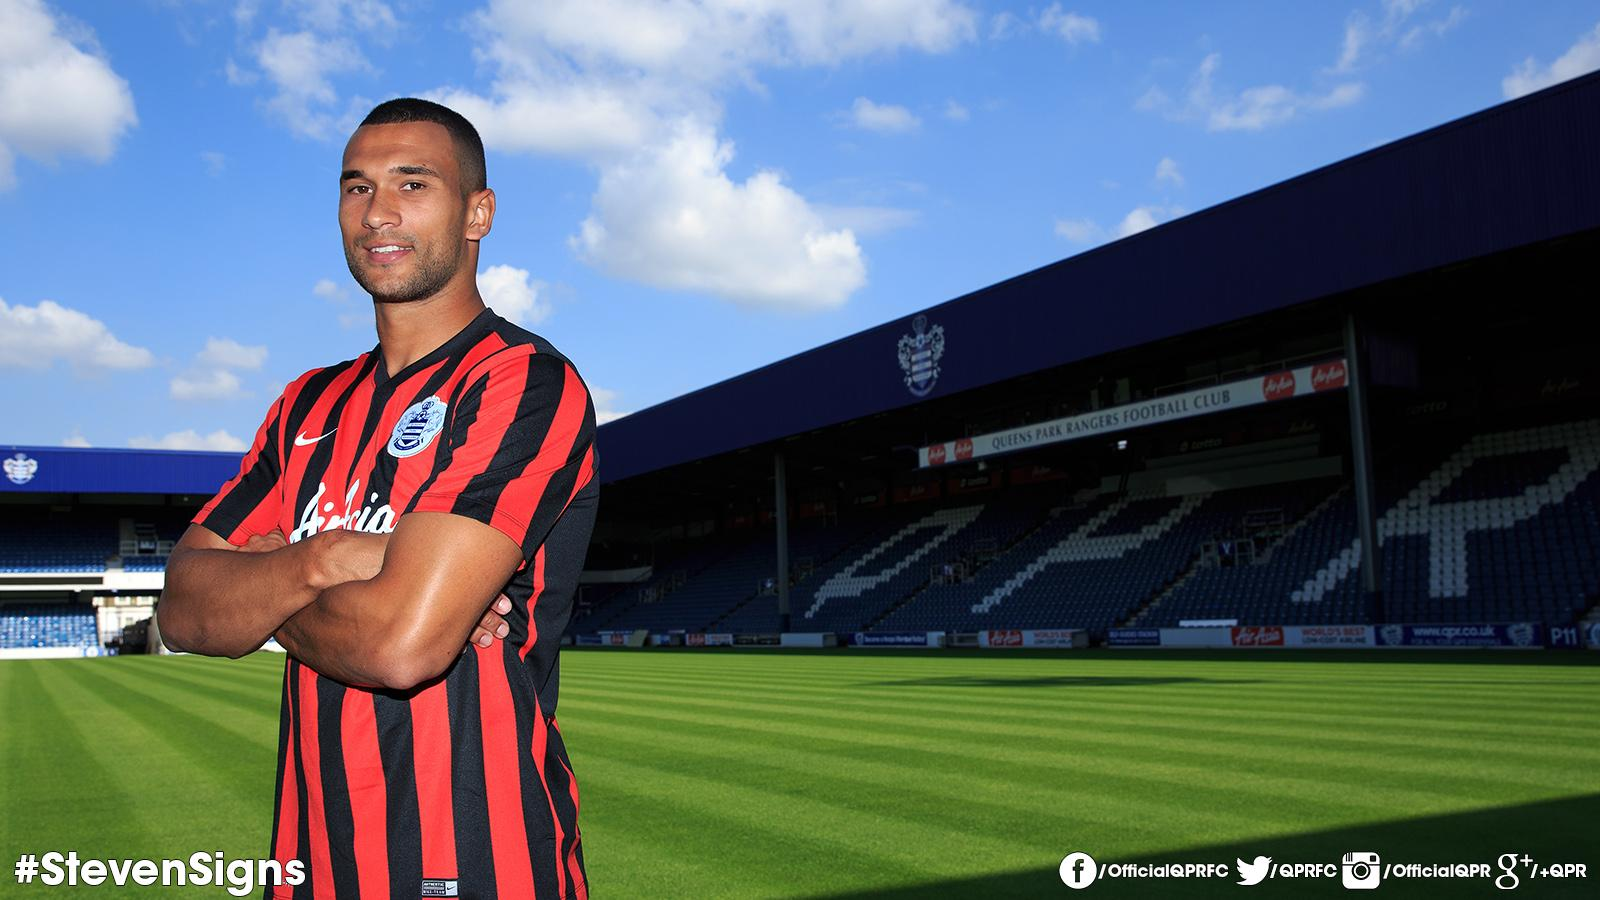 RT @QPRFC: RT to join us in welcoming @Caulker4 to @QPRFC #StevenSigns http://t.co/QcR4VTS9Es